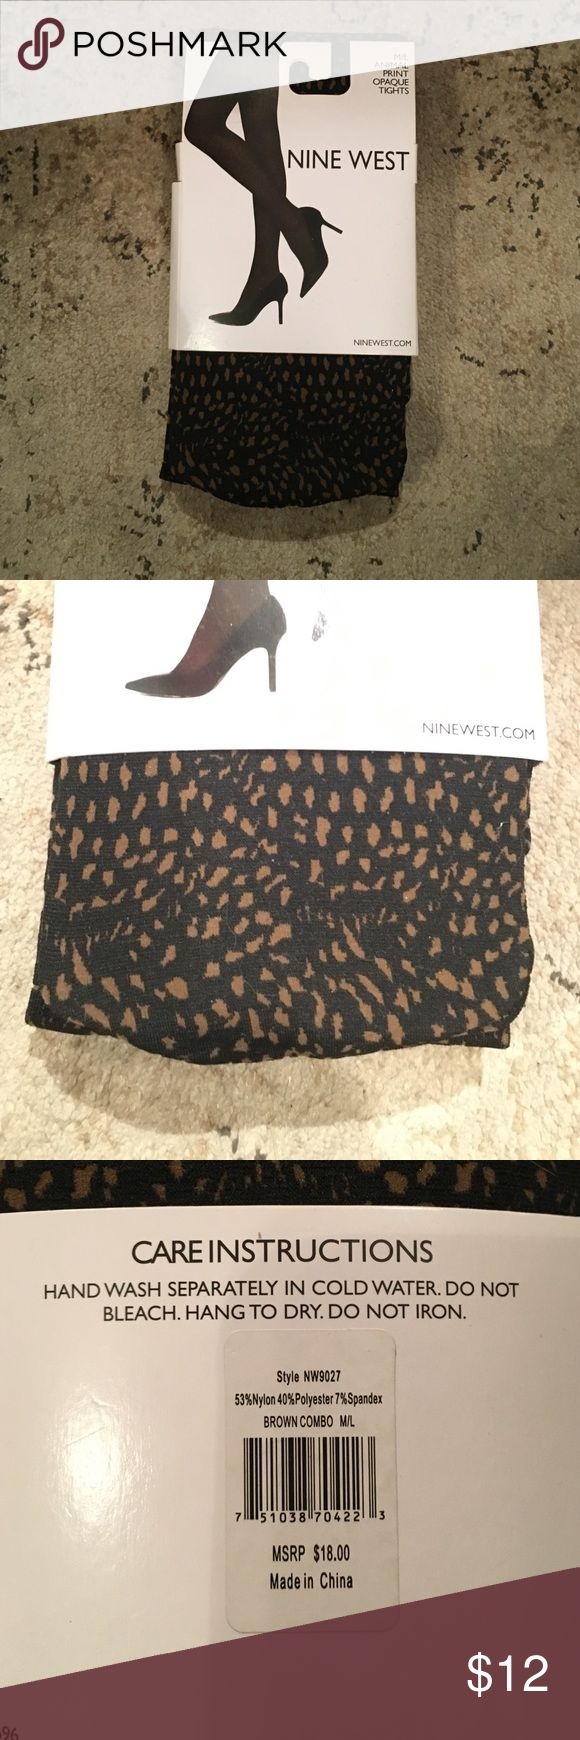 None West Opaque Tights Animals print brown and black opaque tights. Nine West Accessories Hosiery & Socks